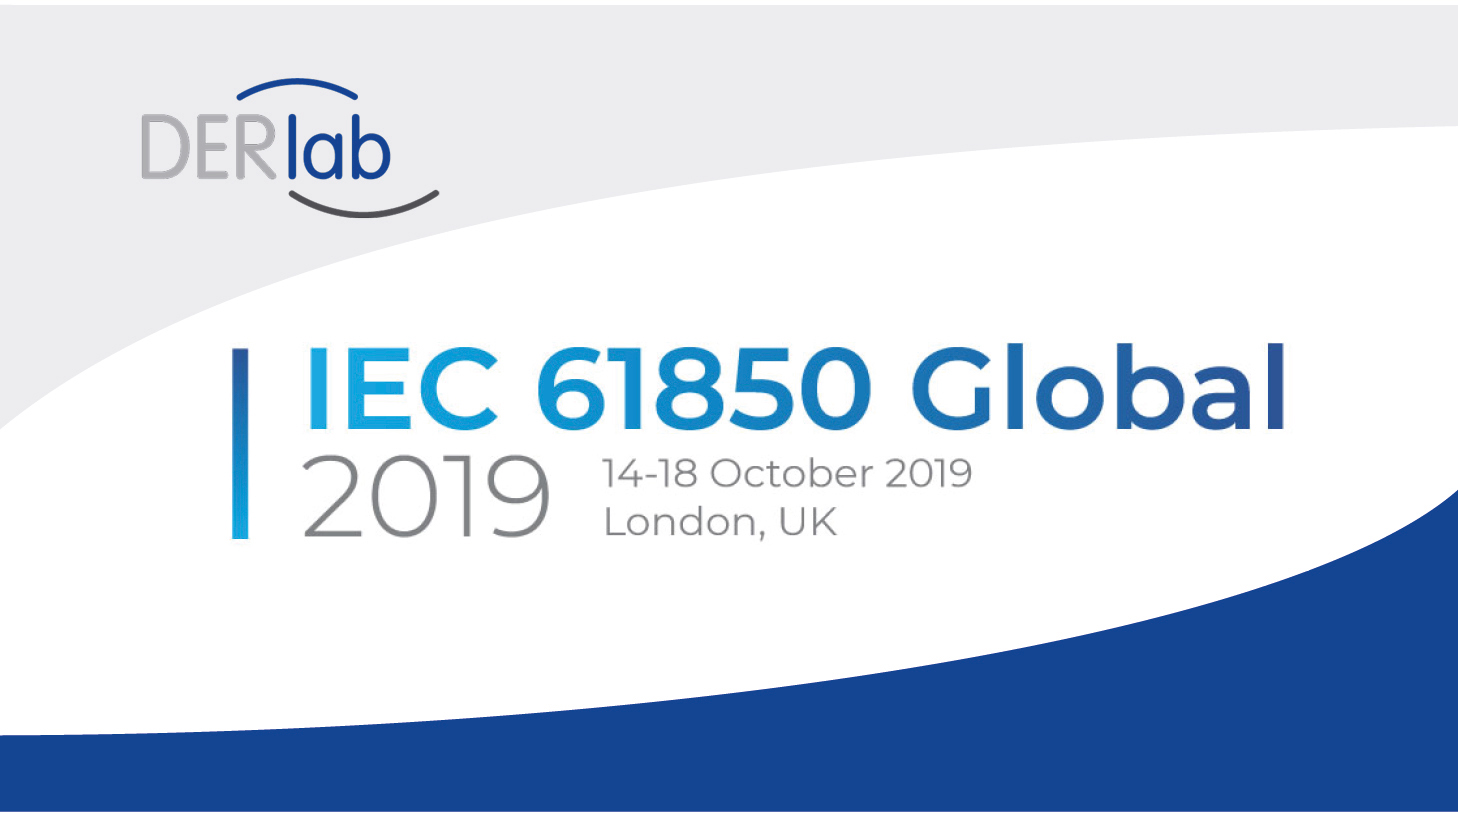 DERlab partners with IEC 61850 Global Conference